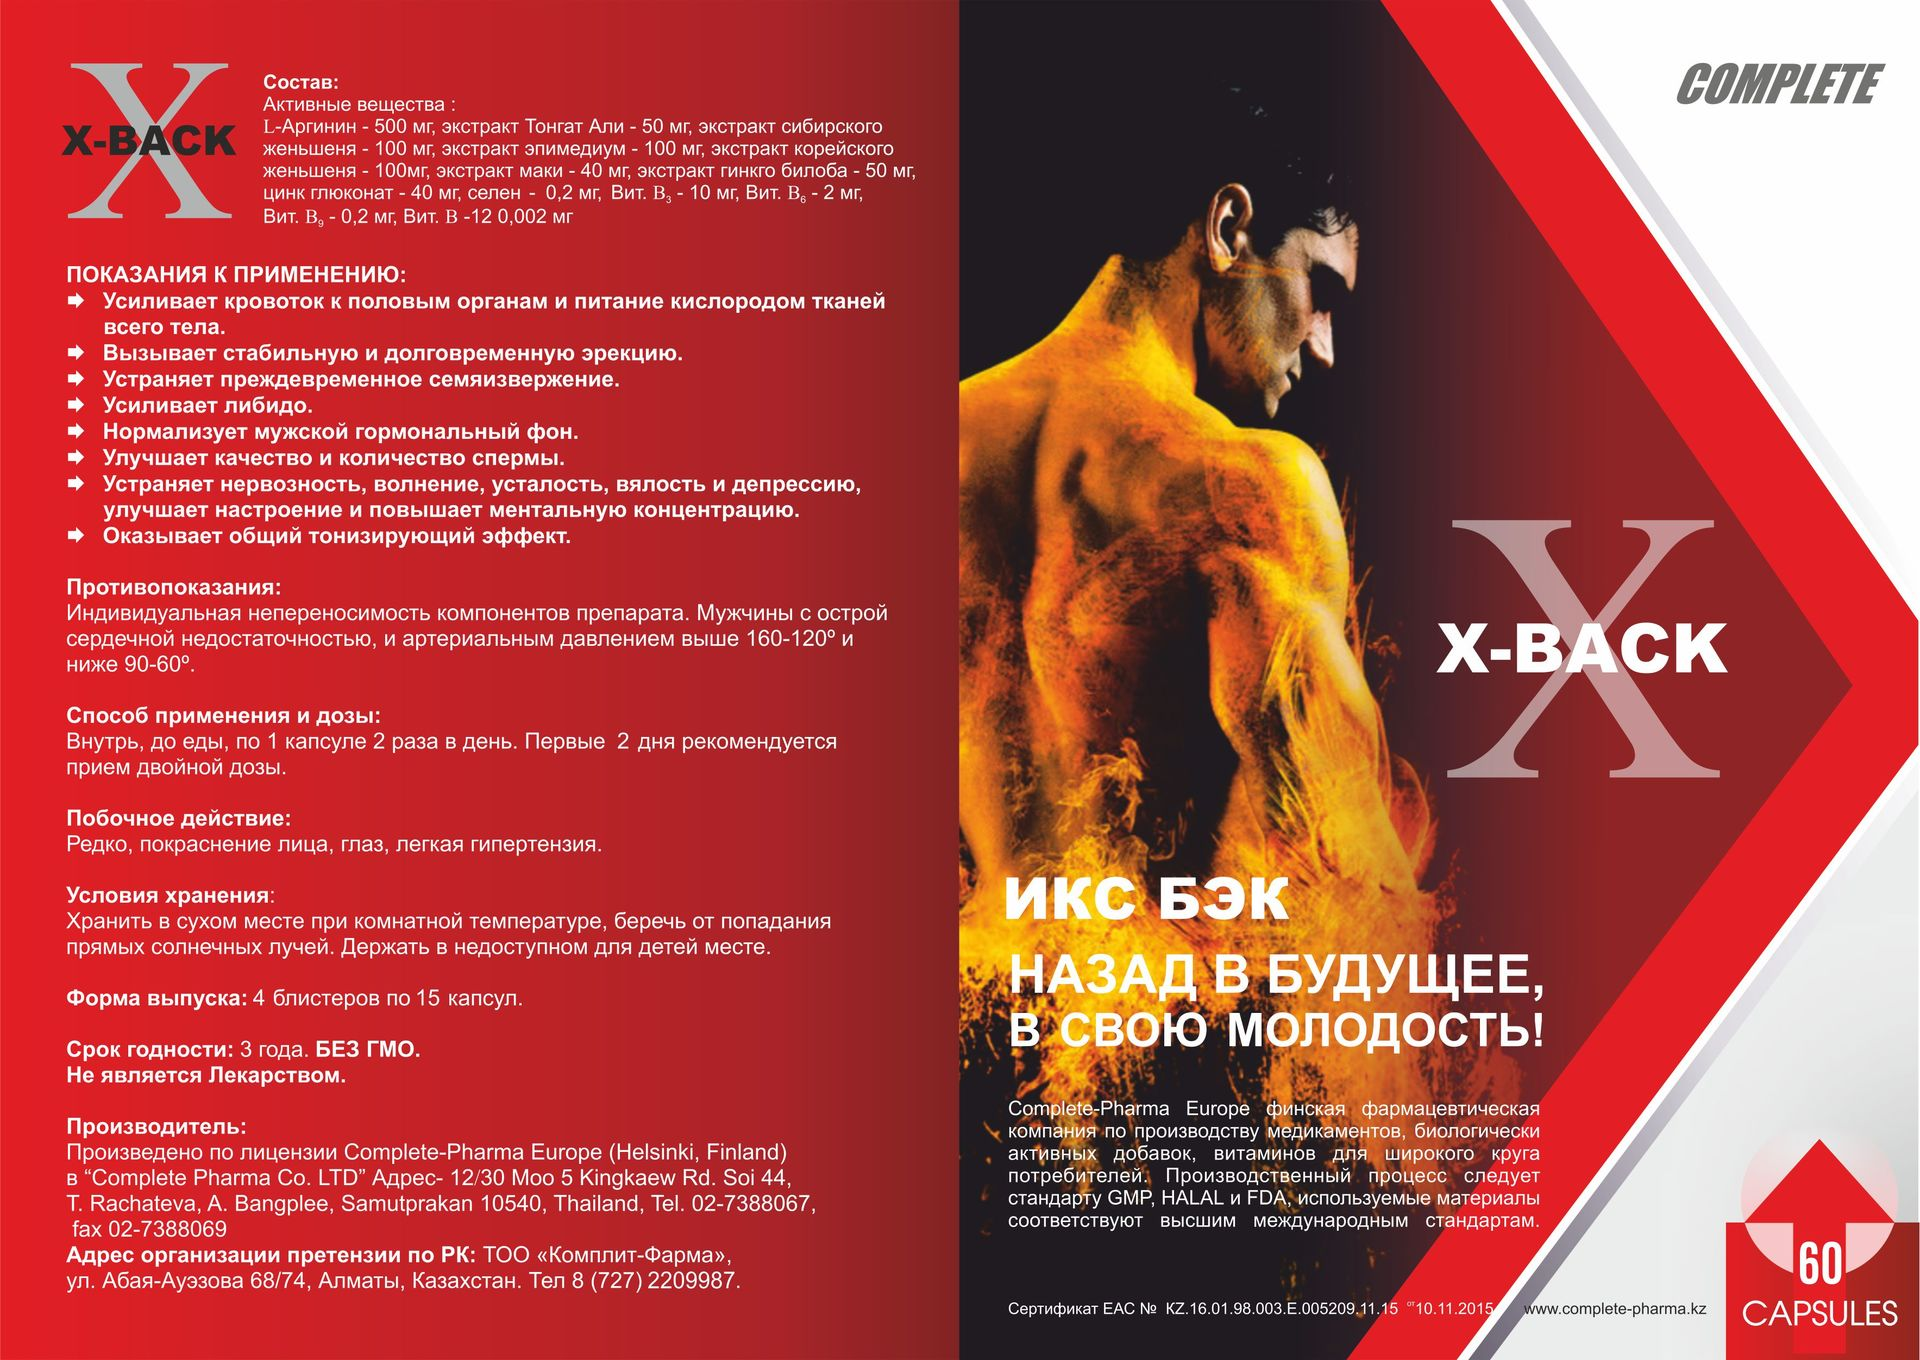 X-back brochure print_DM 01